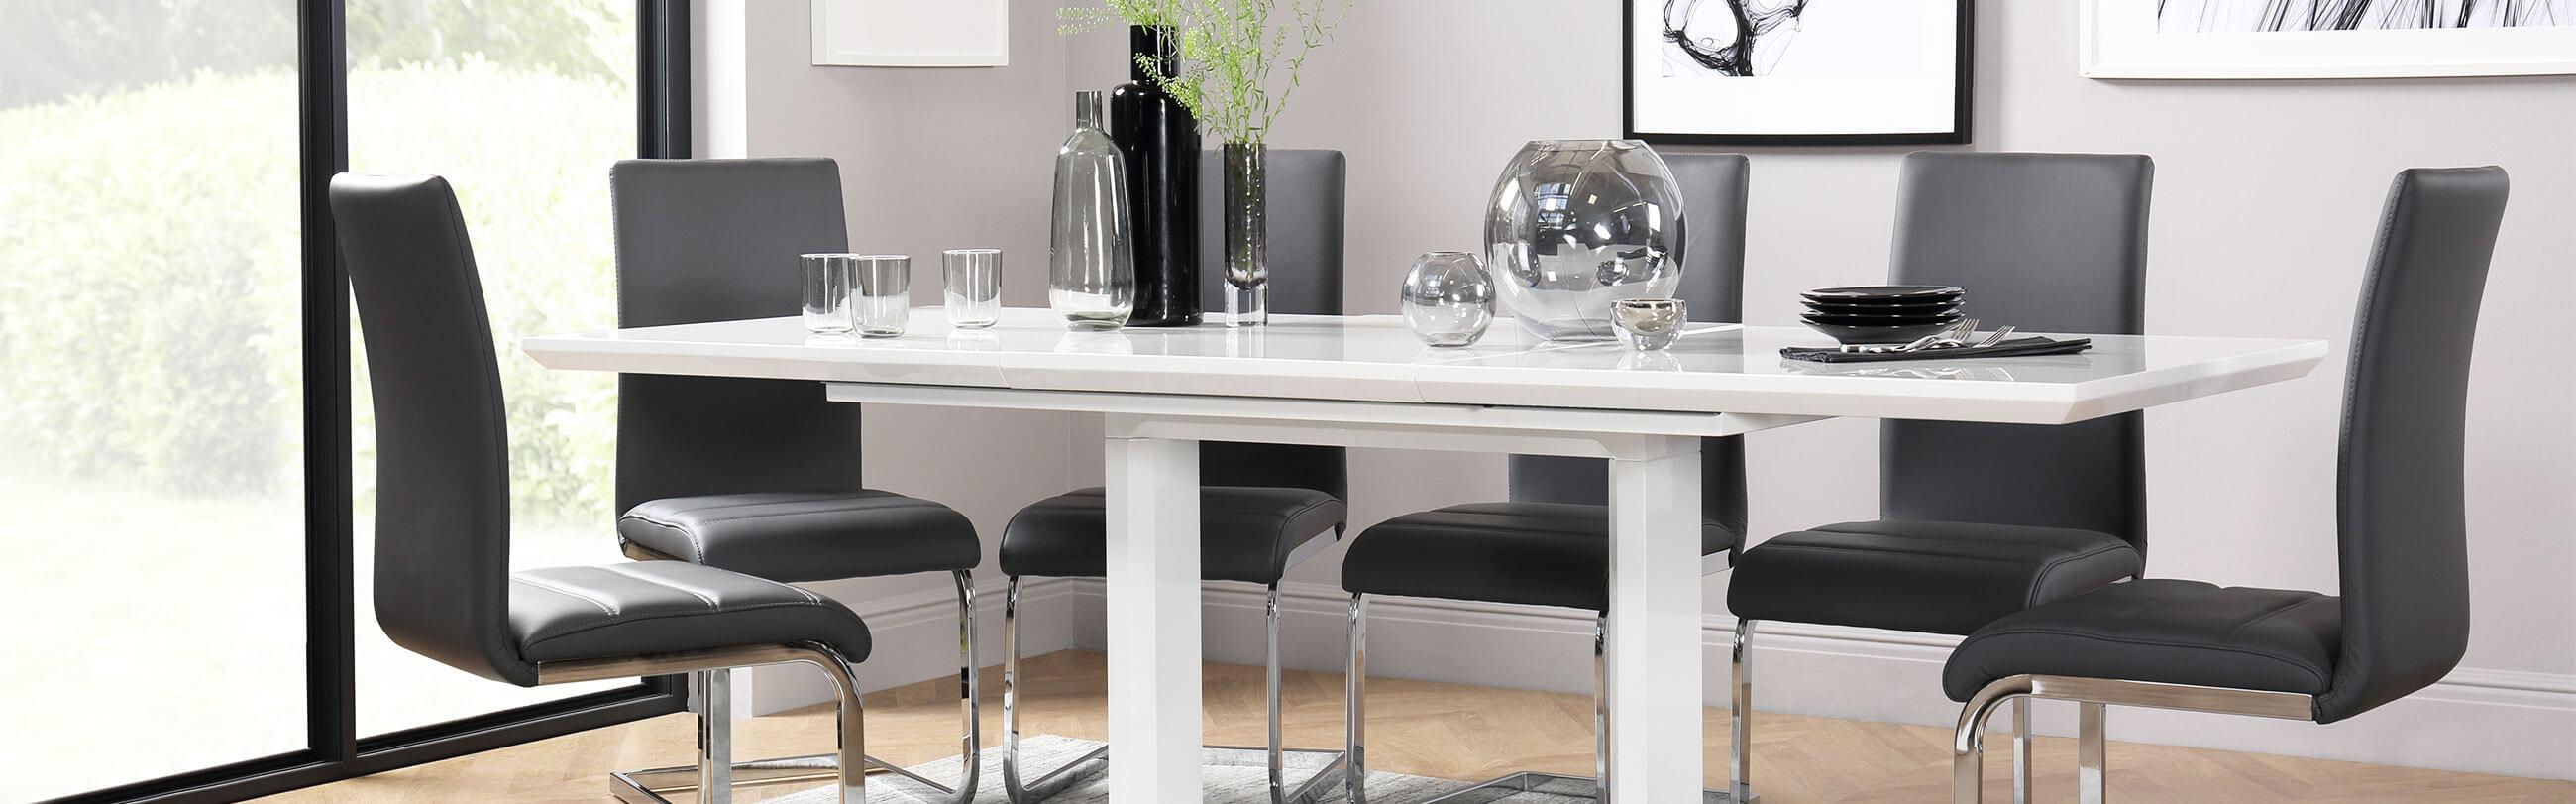 White Dining Sets Dining Room Ideas Advice Inspiration Furniture And Choice